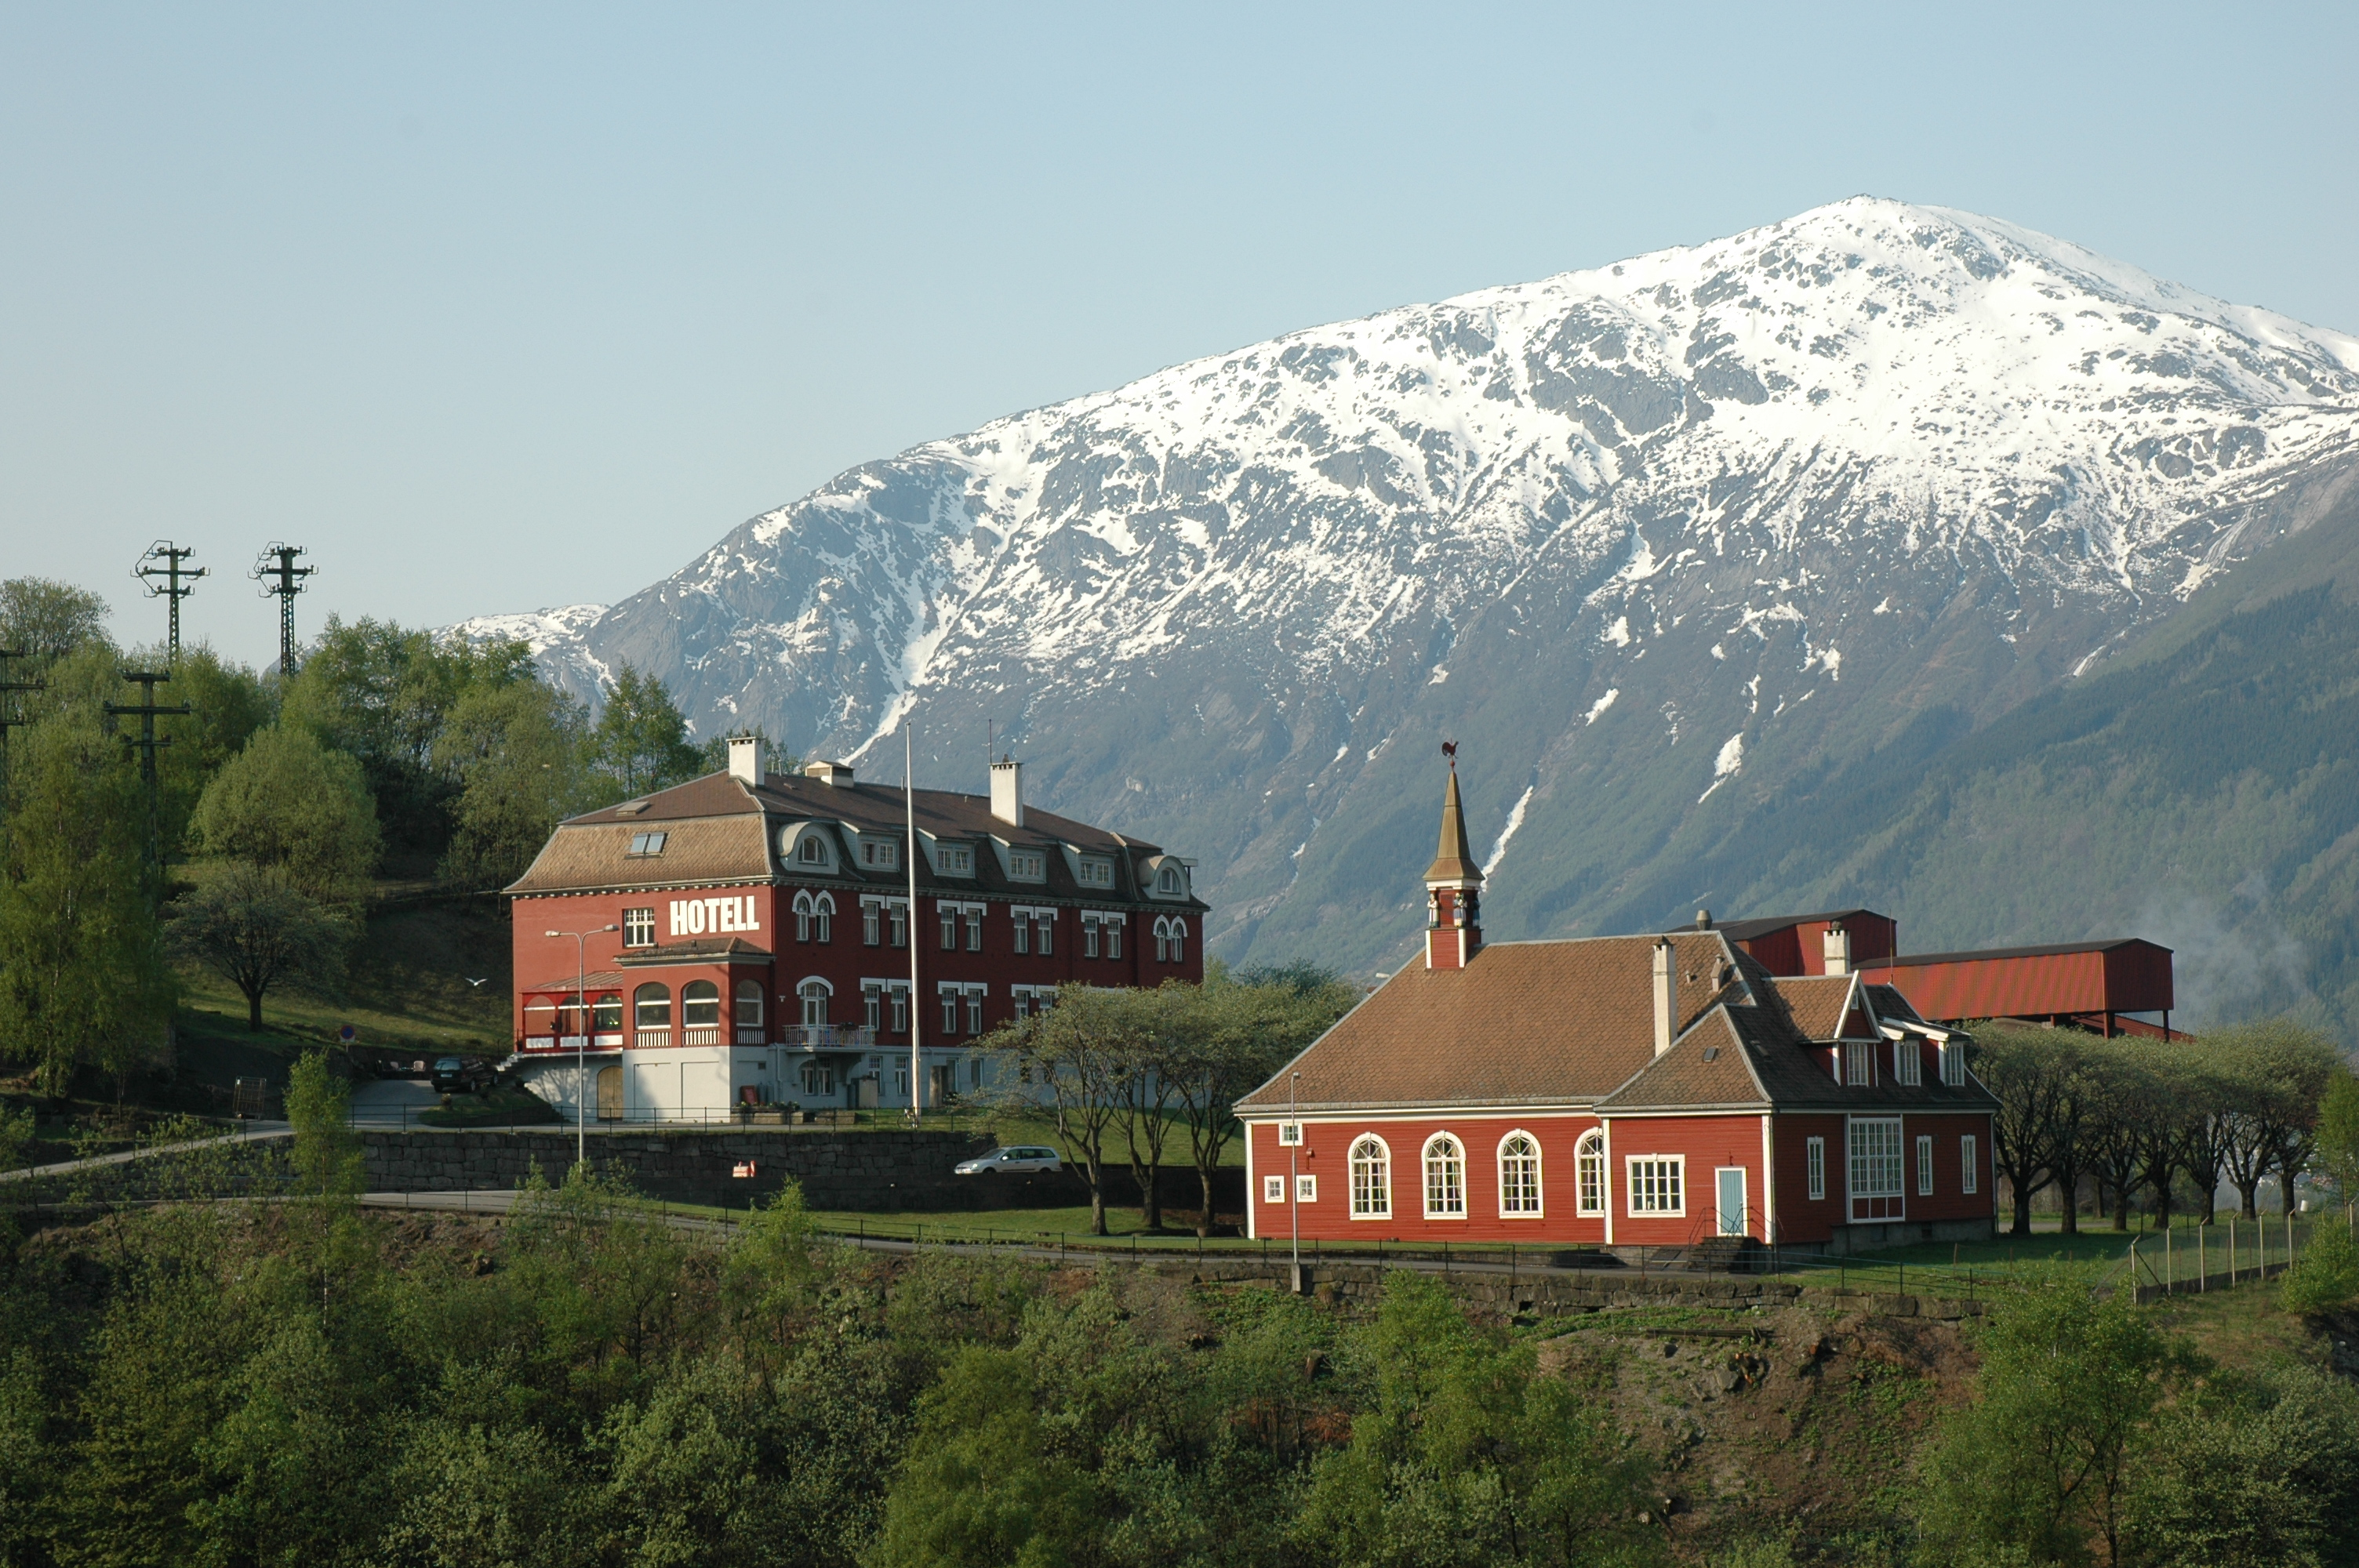 Tyssedal Hotel and the banquet hall Festiviteten.  © RHF (Destination Hardanger Fjord) / Harald Hognerud